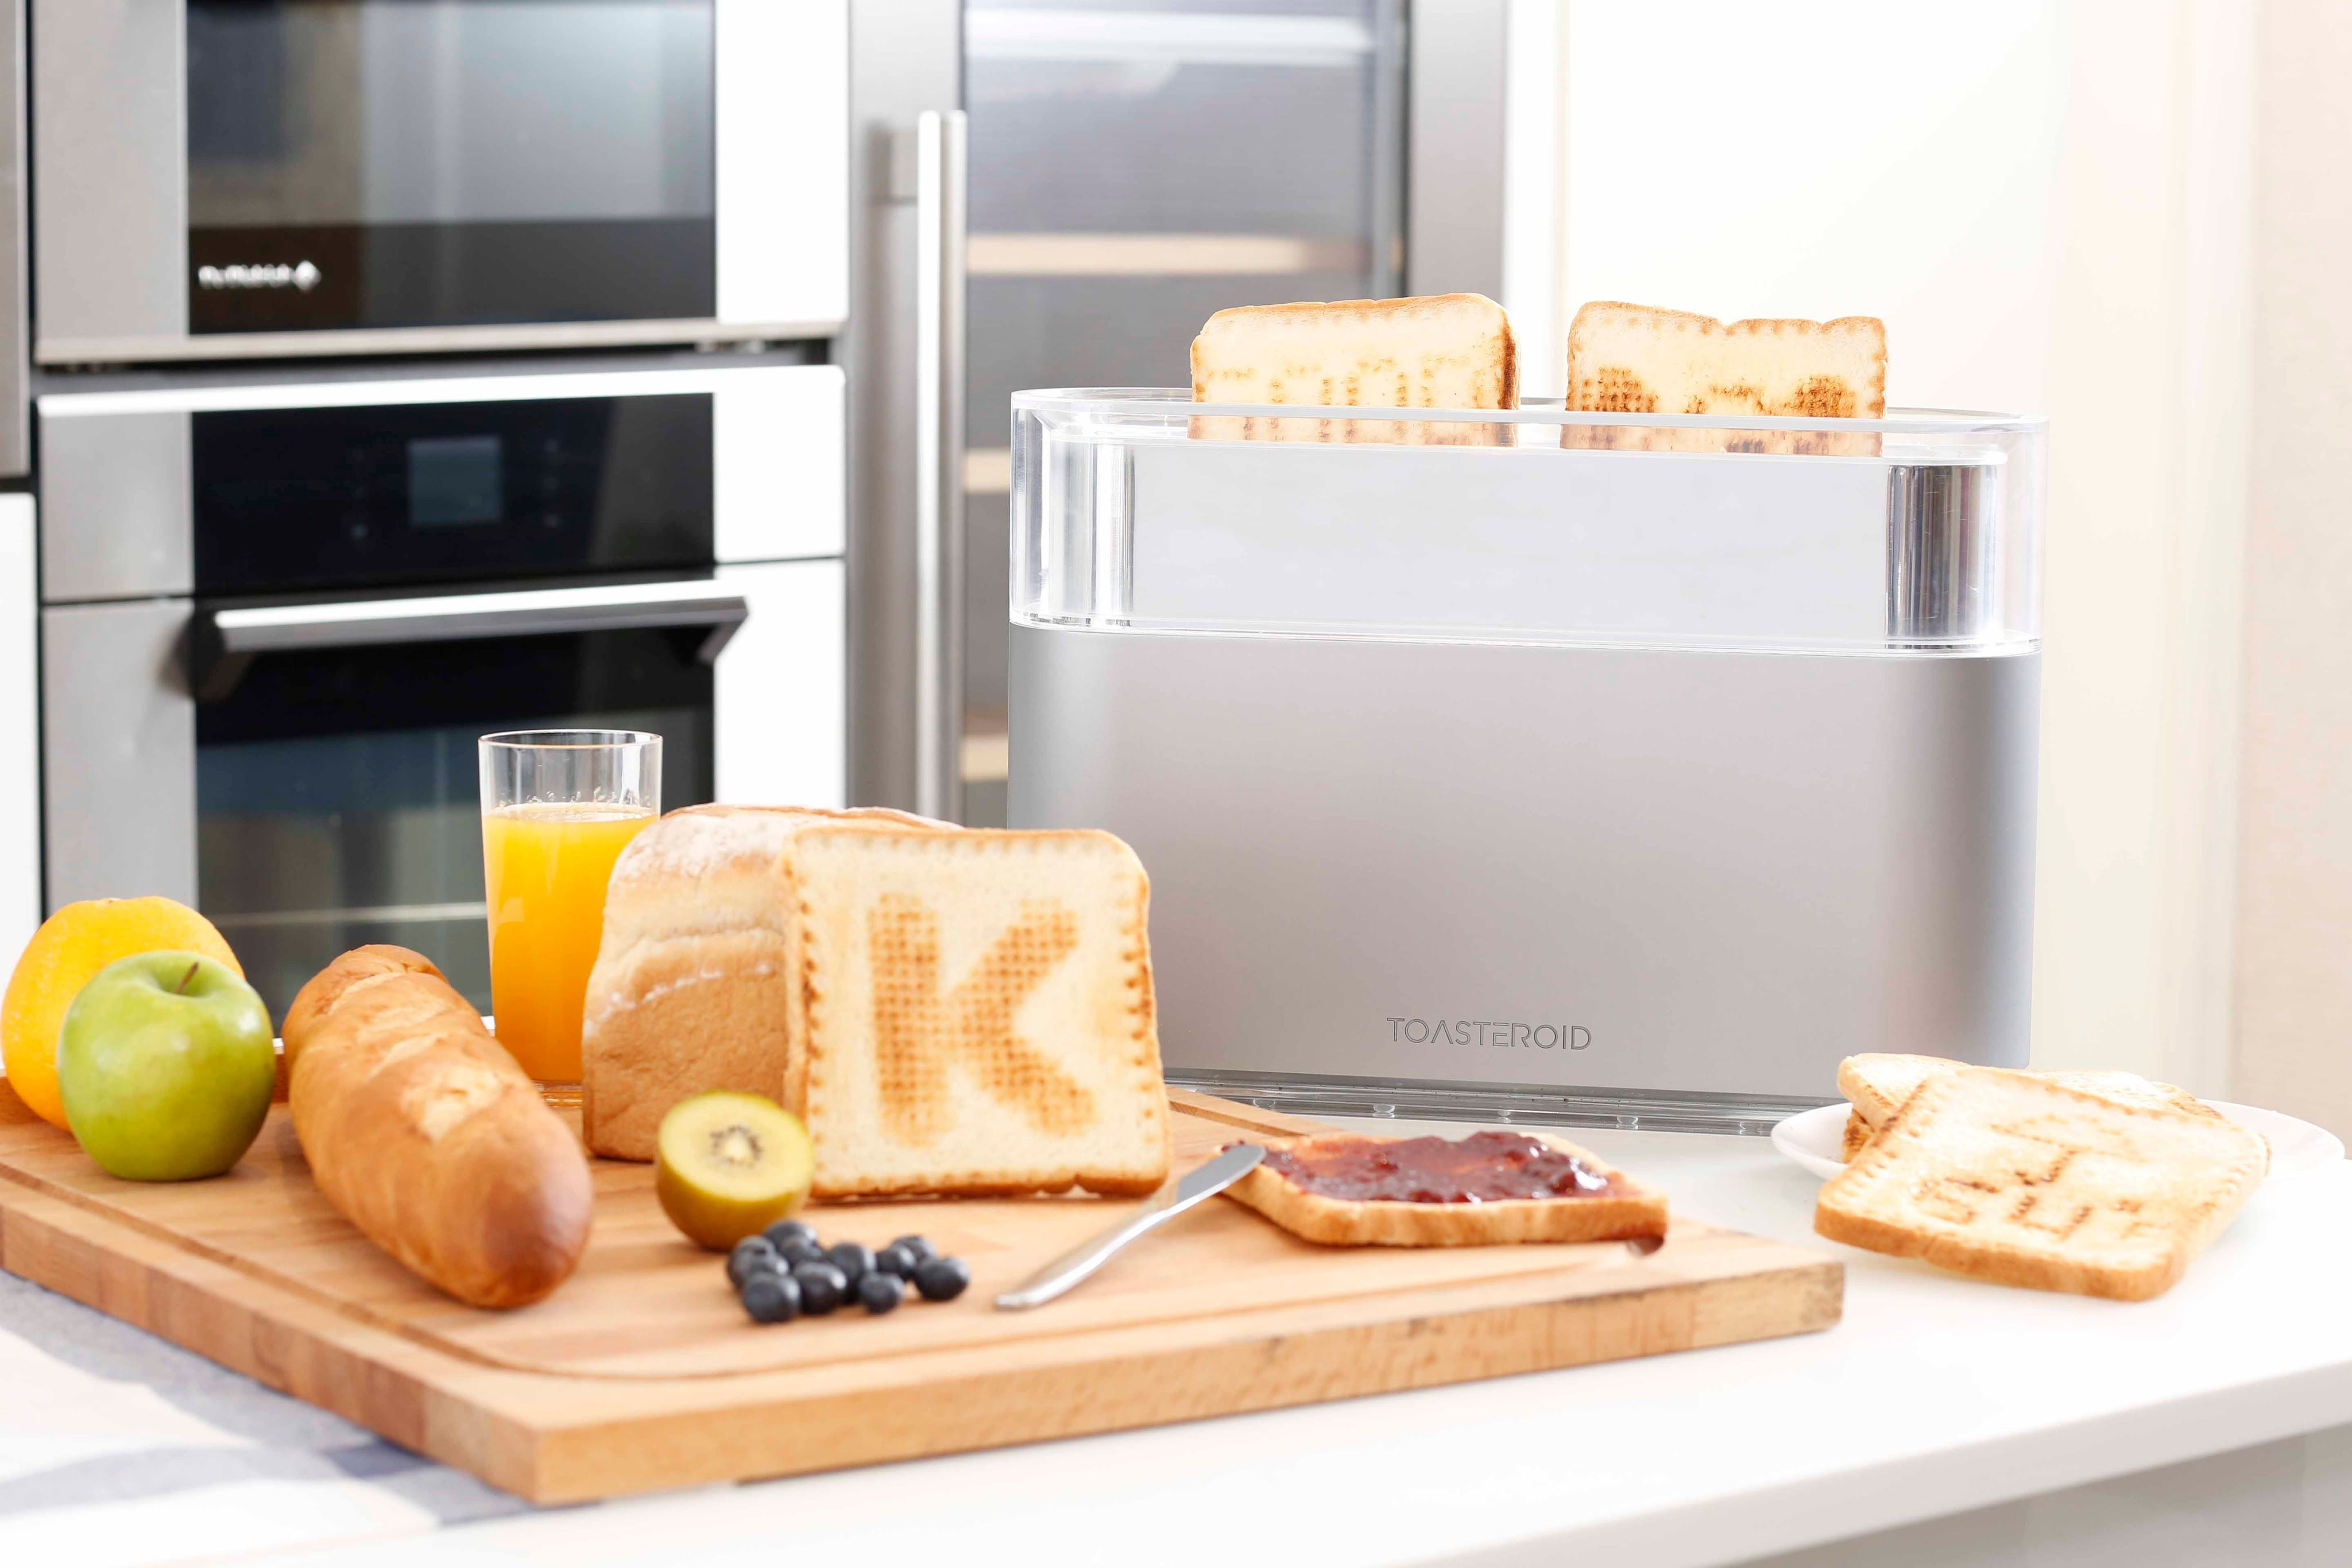 Grille Pain Design Toasteroid Toaster Cool Inventions Pinterest Bread Toaster